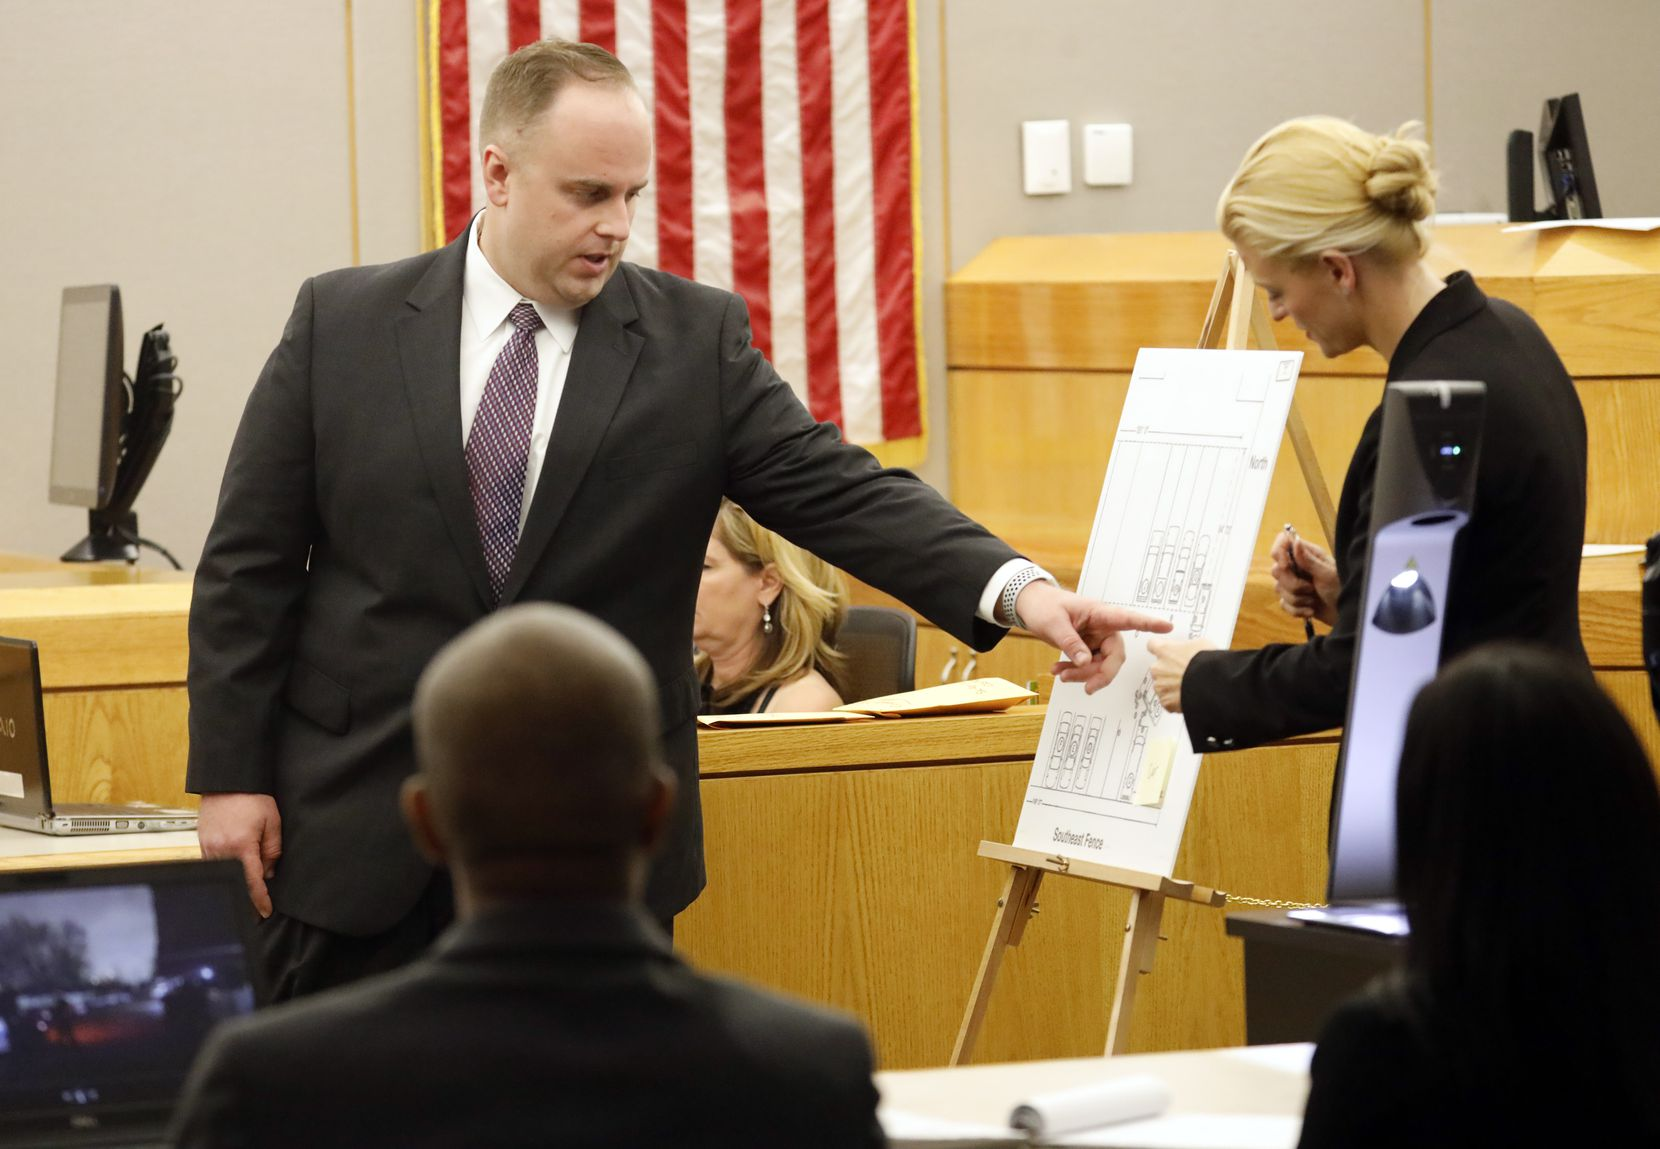 Dallas police officer Jason Kimpel, who also fired gunshots with former Dallas police officer Christopher Hess, points to a map of the scene for defense attorney Messina Madson. He was testifying in Hess' aggravated assault trial in the 292nd District Court at the Frank Crowley Courts Building in Dallas Thursday, February 6, 2020. Hess is accused of the 2017 fatal shooting of 21-year-old Genevive Dawes. (Tom Fox/The Dallas Morning News)